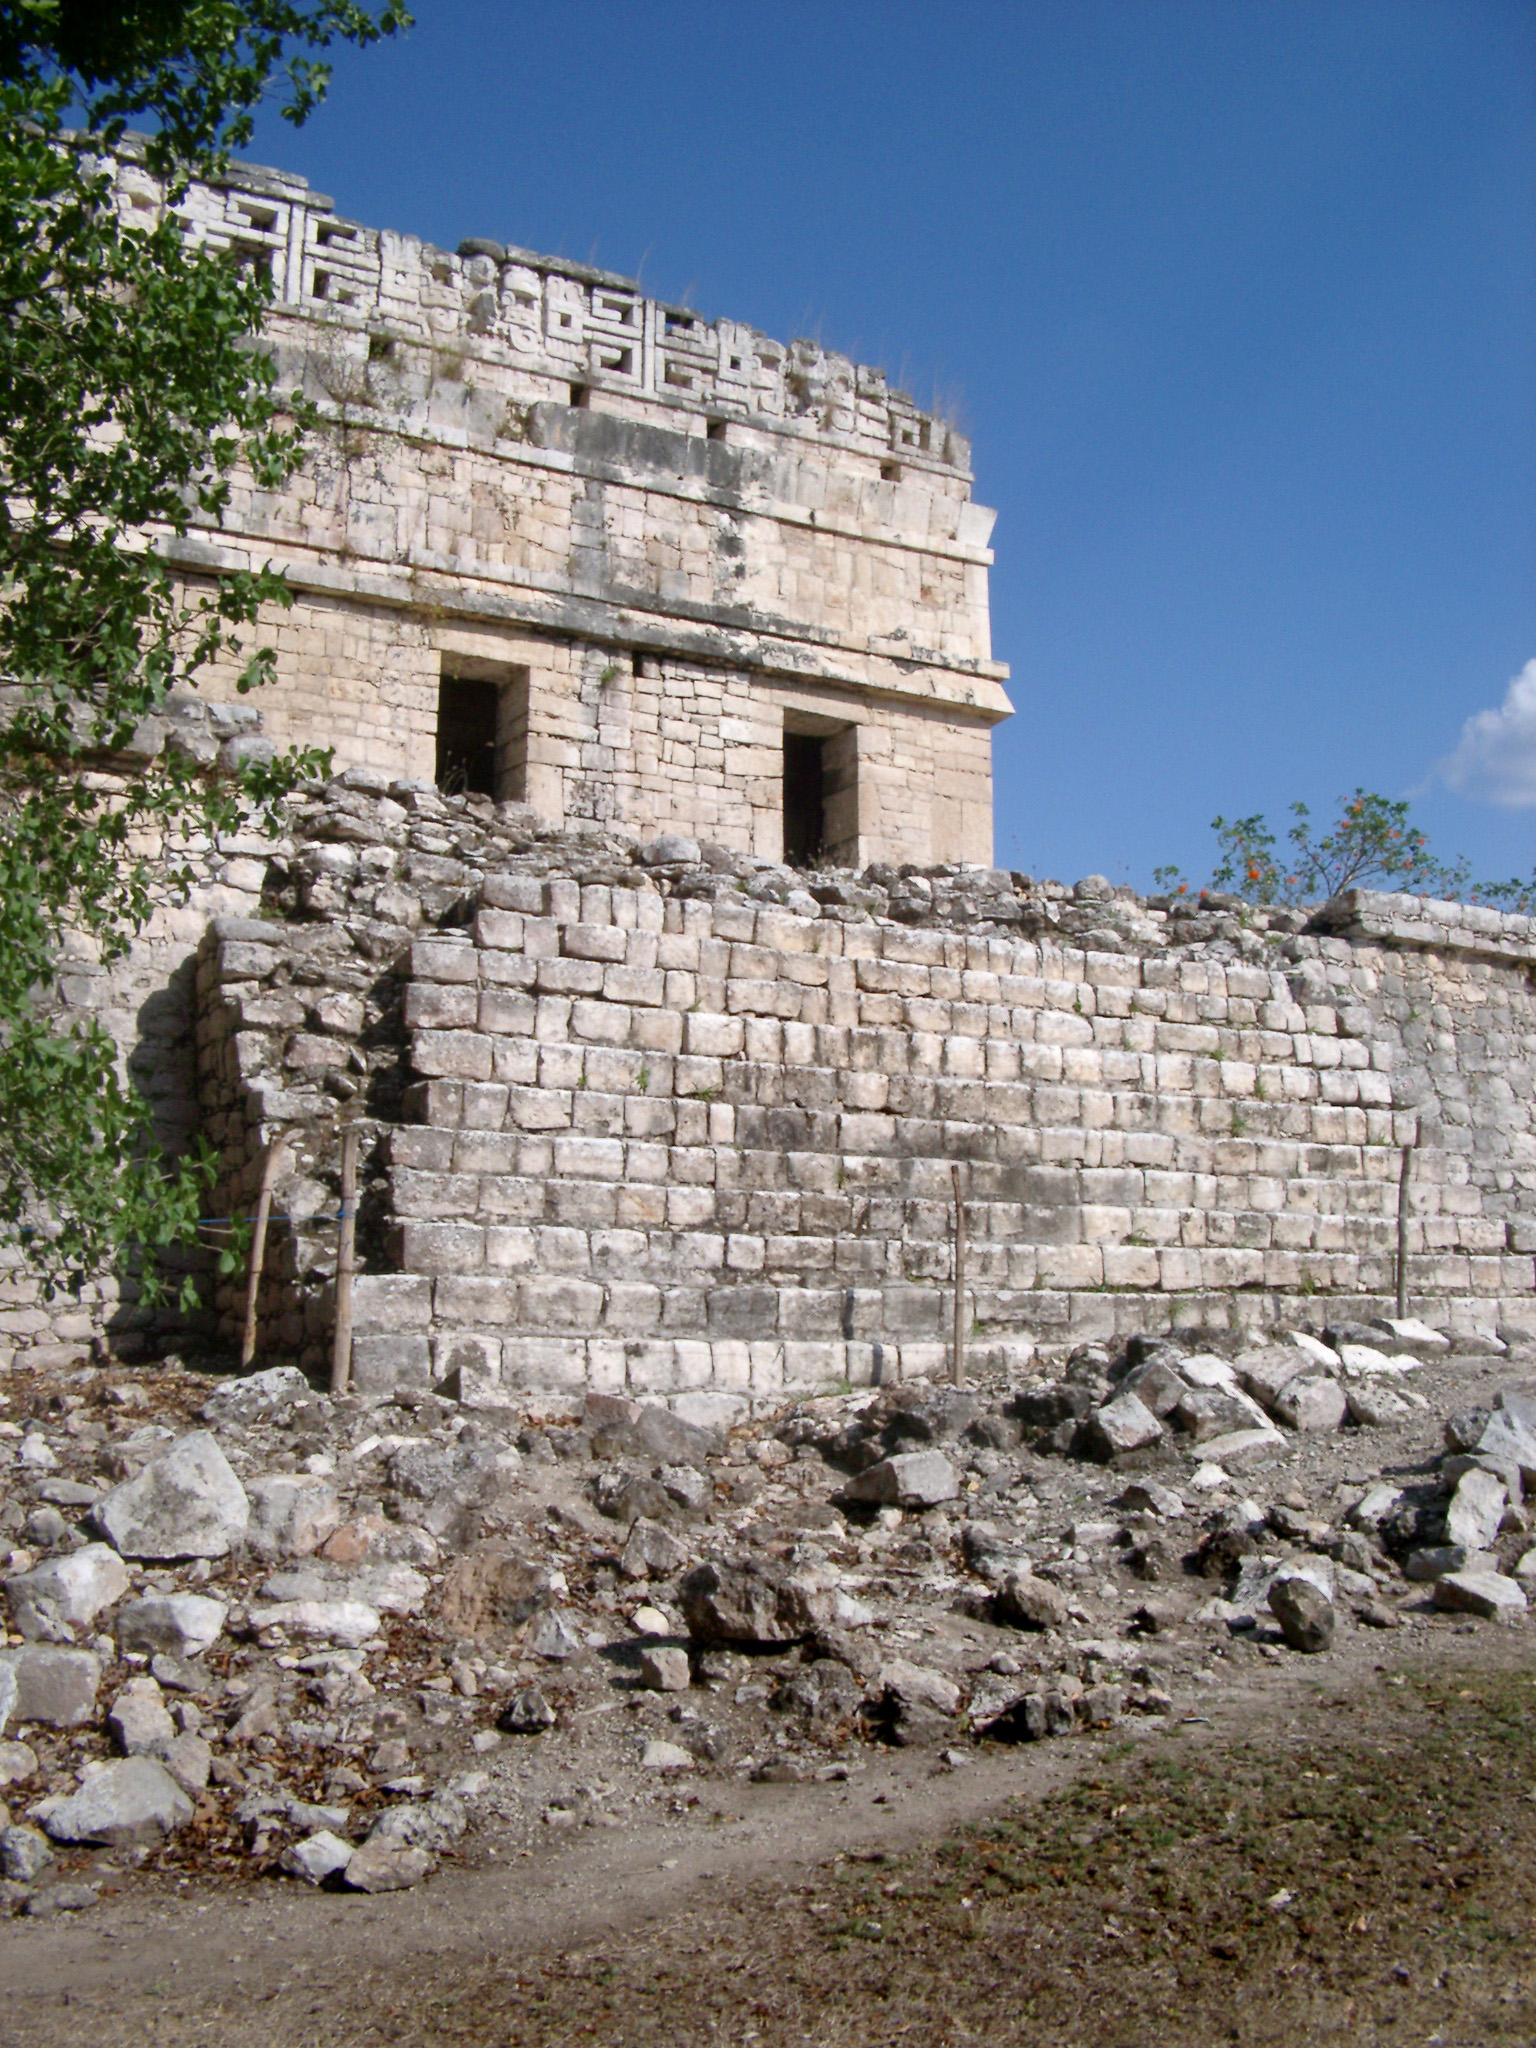 Ancient Disfigured Building Structure at Chichen Itza. Isolated on Blue Sky Background.